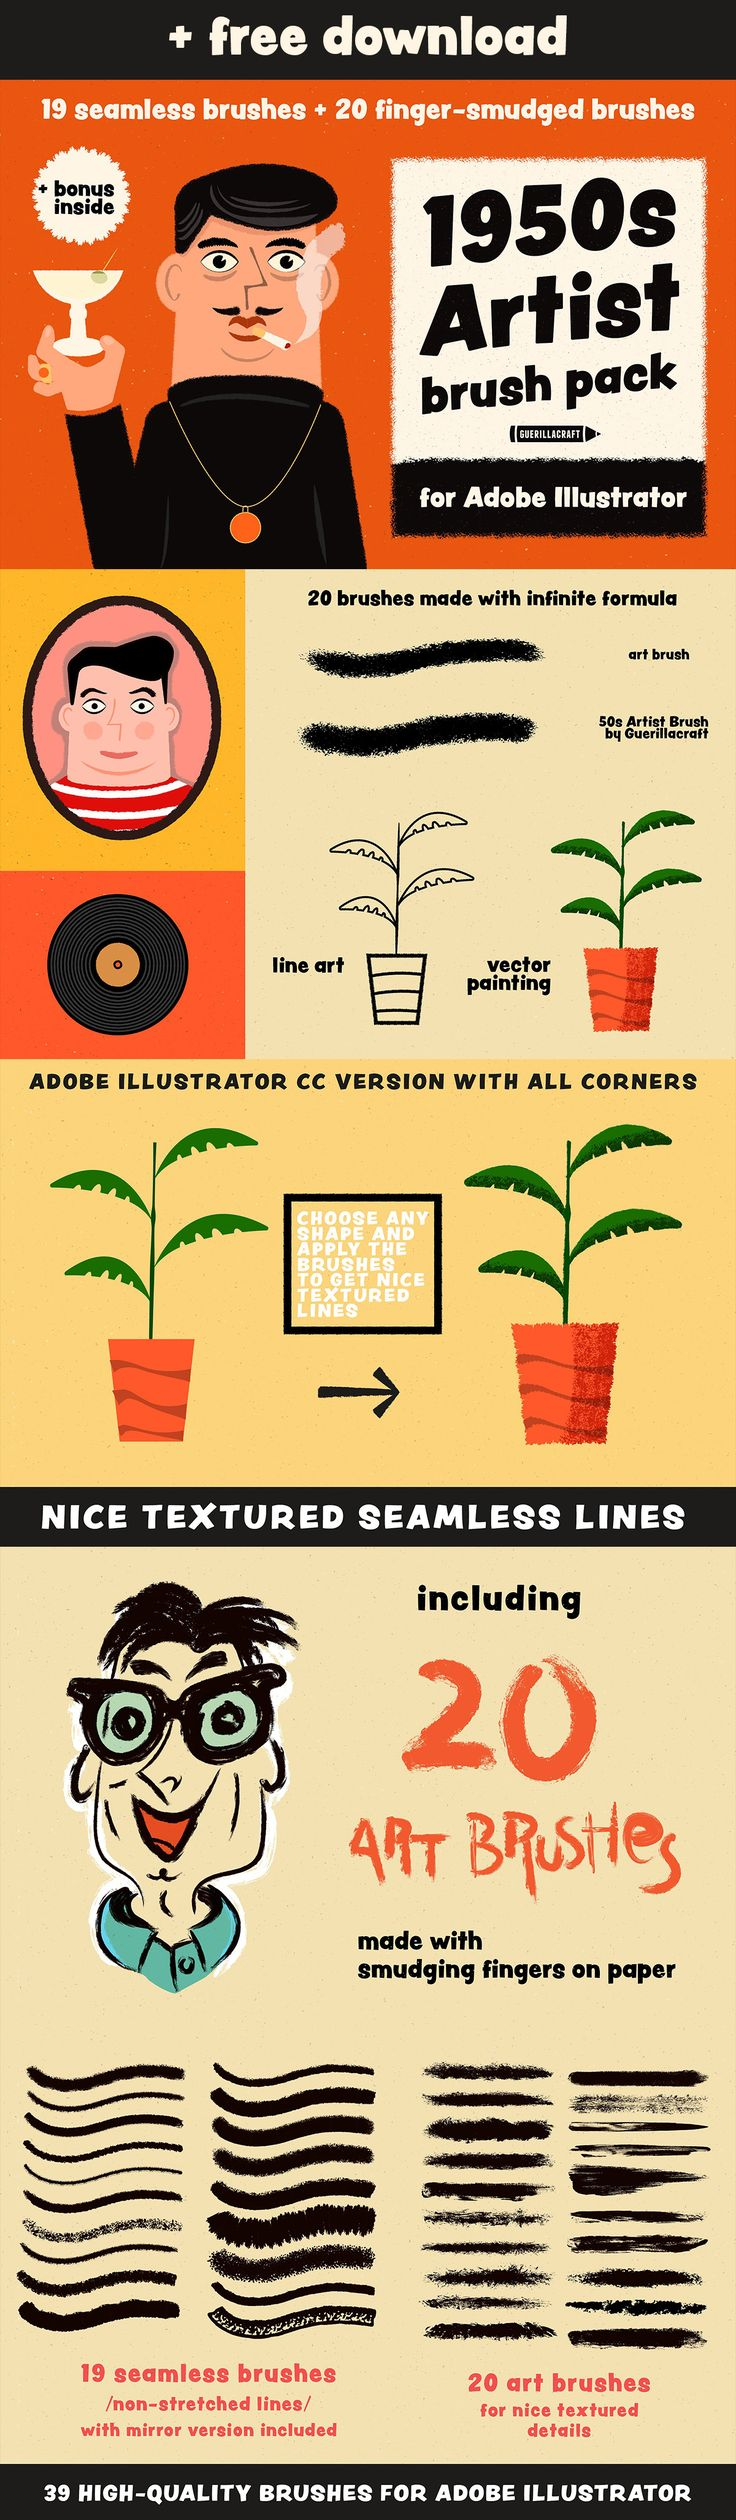 1950s Artist Brushes for Illustrator + FREE SAMPLES on Behance | Download Free Adobe Illustrator Brushes on my Behance. They are seamless, great for textured vector illustrations. Try for free!